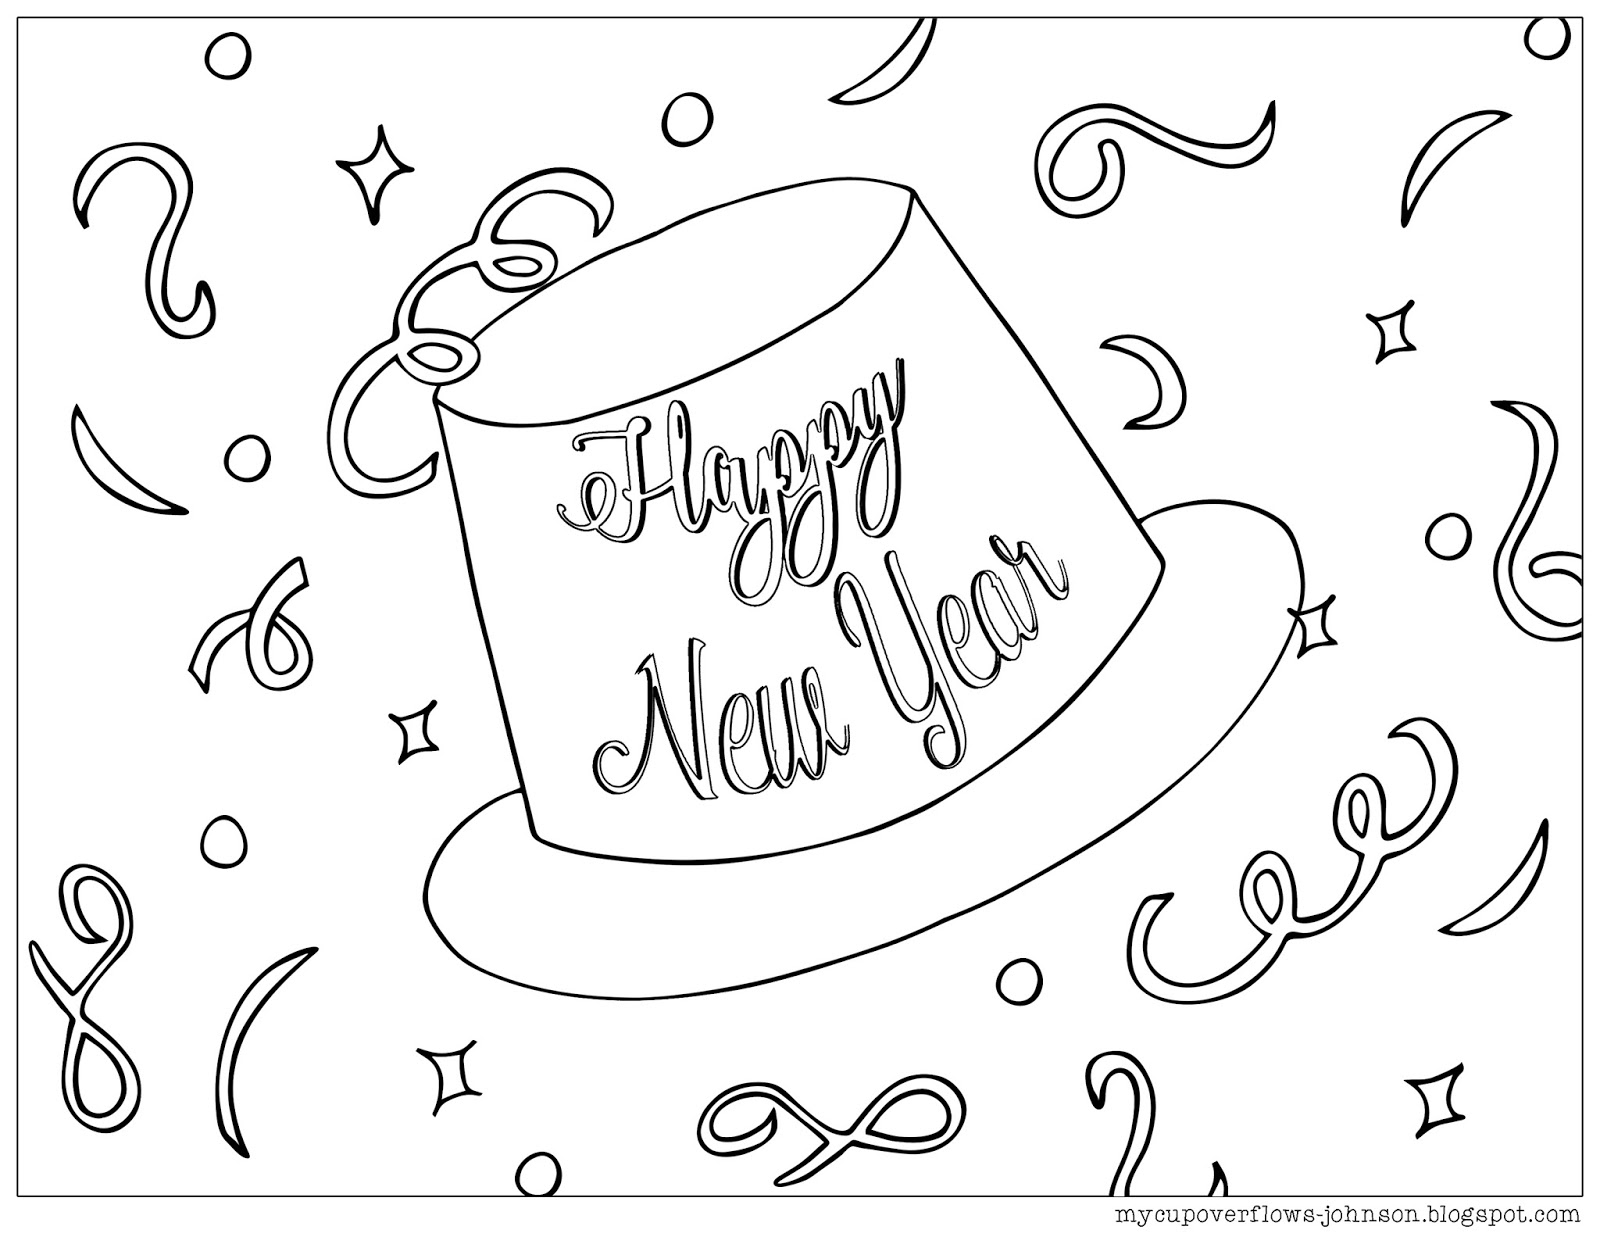 My Cup Overflows: Happy New Year 2018